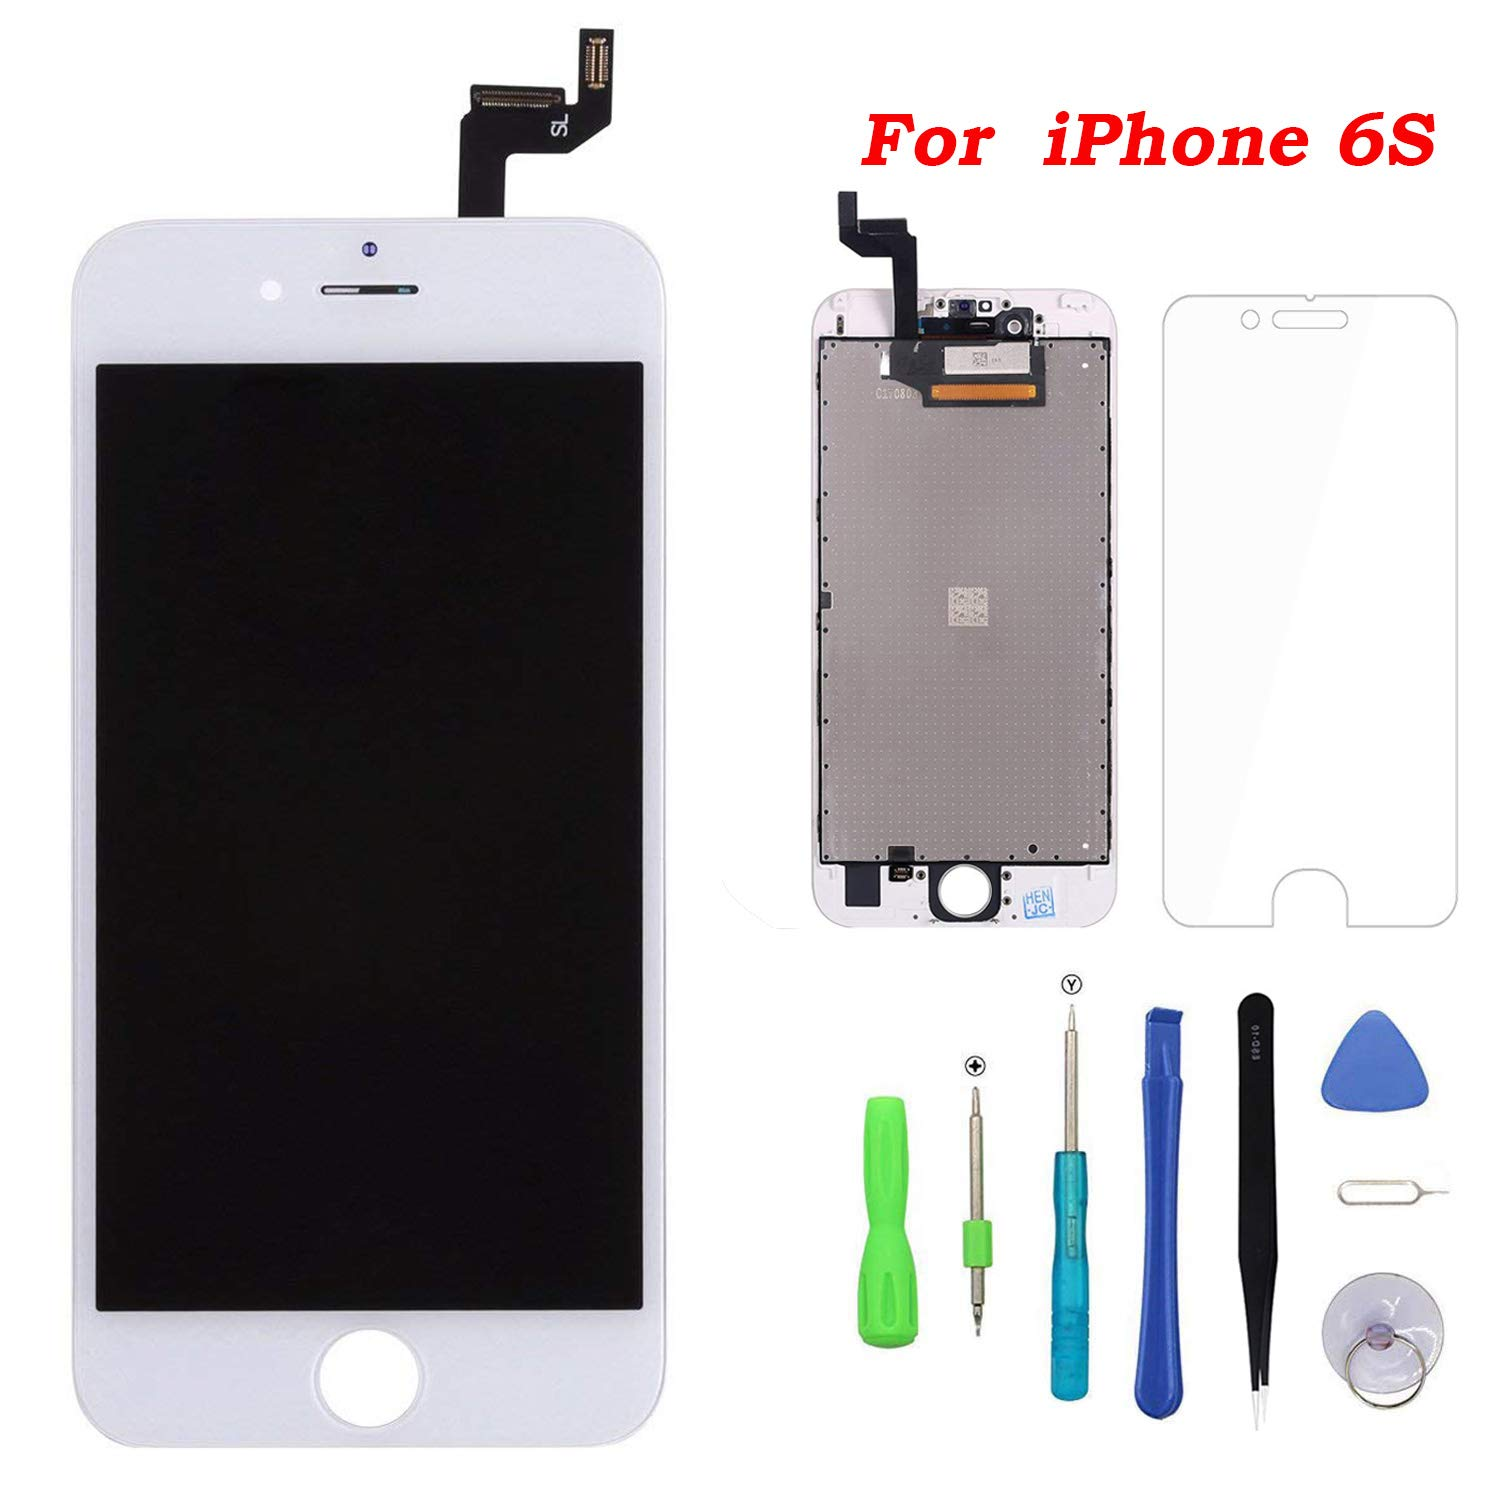 Screen Replacement for iPhone 6s White Touch Screen Digitizer LCD Display Replacement Full Assembly with Repair Tool Kit (6s.White) by YOXINTA